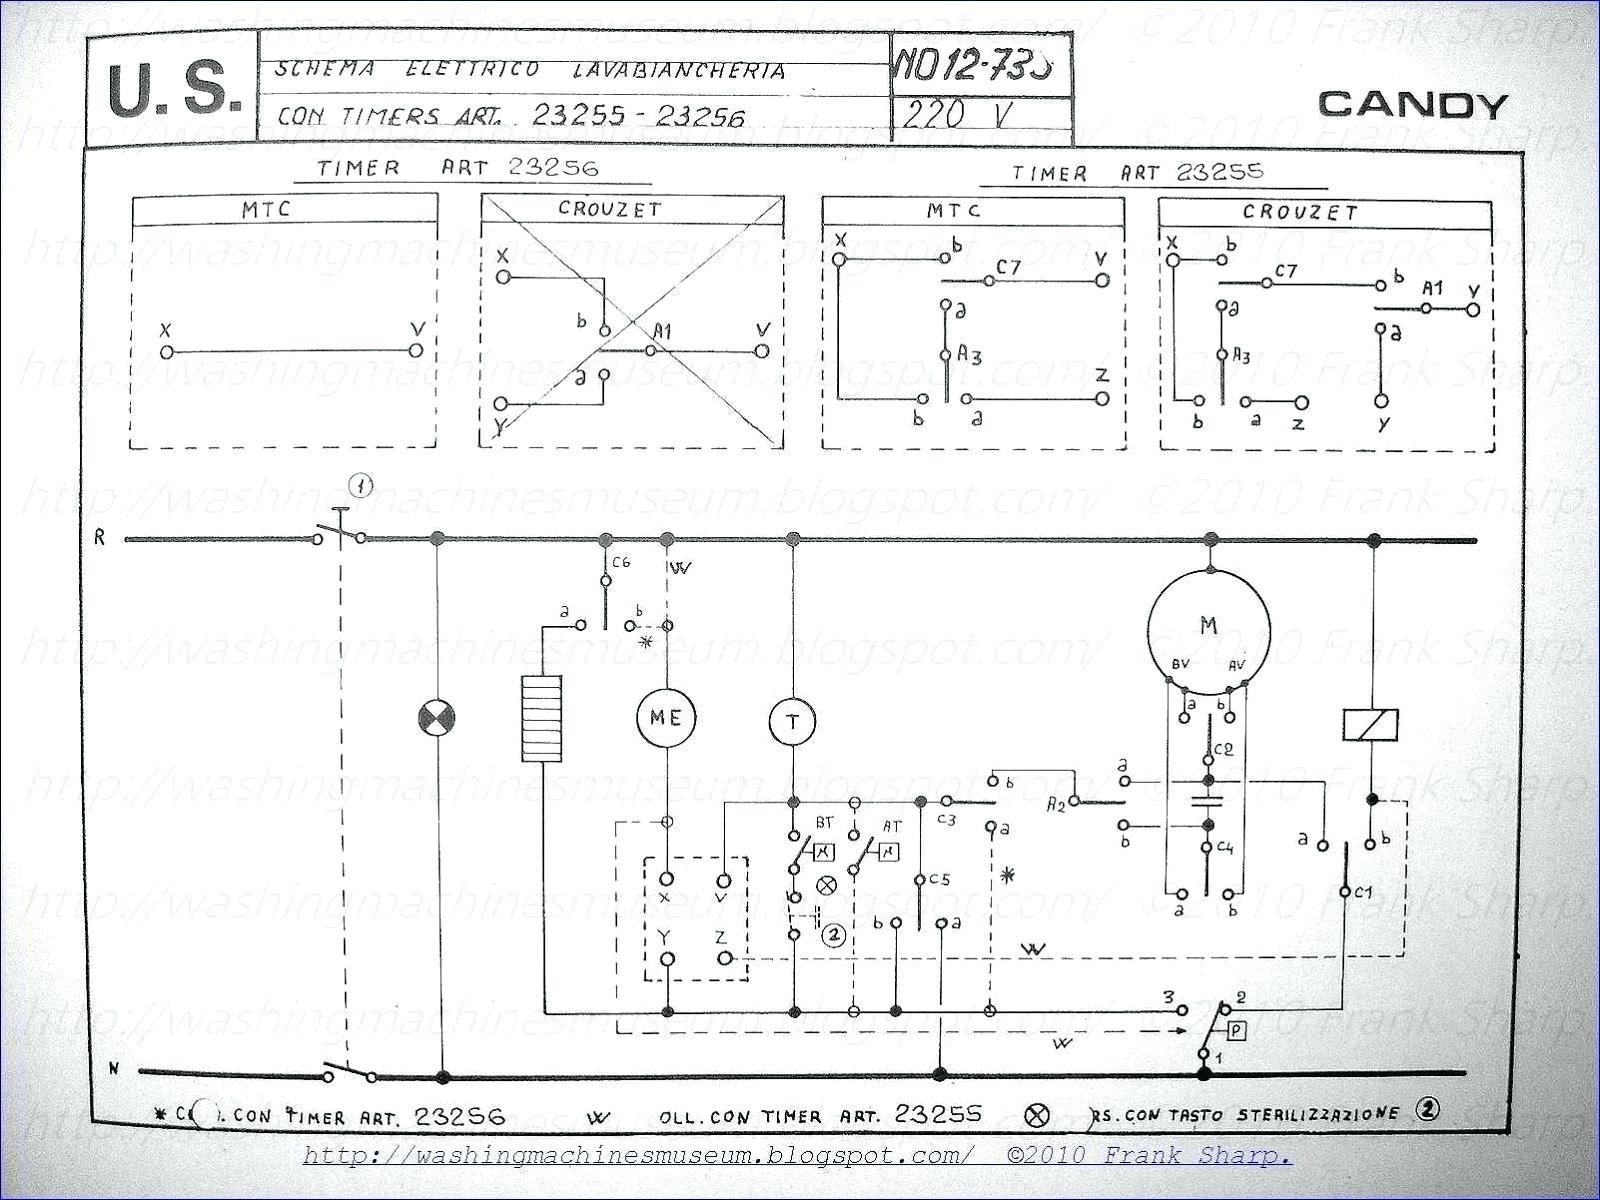 Whirlpool Duet Dryer Wiring Diagram on ge dryer wiring diagram, whirlpool wiring schematic, whirlpool duet sport model number, whirlpool washer diagram, roper dryer wiring diagram, amana dryer wiring diagram, hotpoint dryer wiring diagram, electrolux dryer wiring diagram, whirlpool dryer repair diagram, whirlpool electric dryer diagram, whirlpool schematic diagrams, whirlpool dryer timer wiring diagram, whirlpool dryer power cord diagram, kenmore dryer wiring diagram, ggw9200lw0 dryer wiring diagram, haier dryer wiring diagram, maytag dryer wiring diagram, dryer plug wiring diagram, bosch dryer wiring diagram, electric dryer wiring diagram,